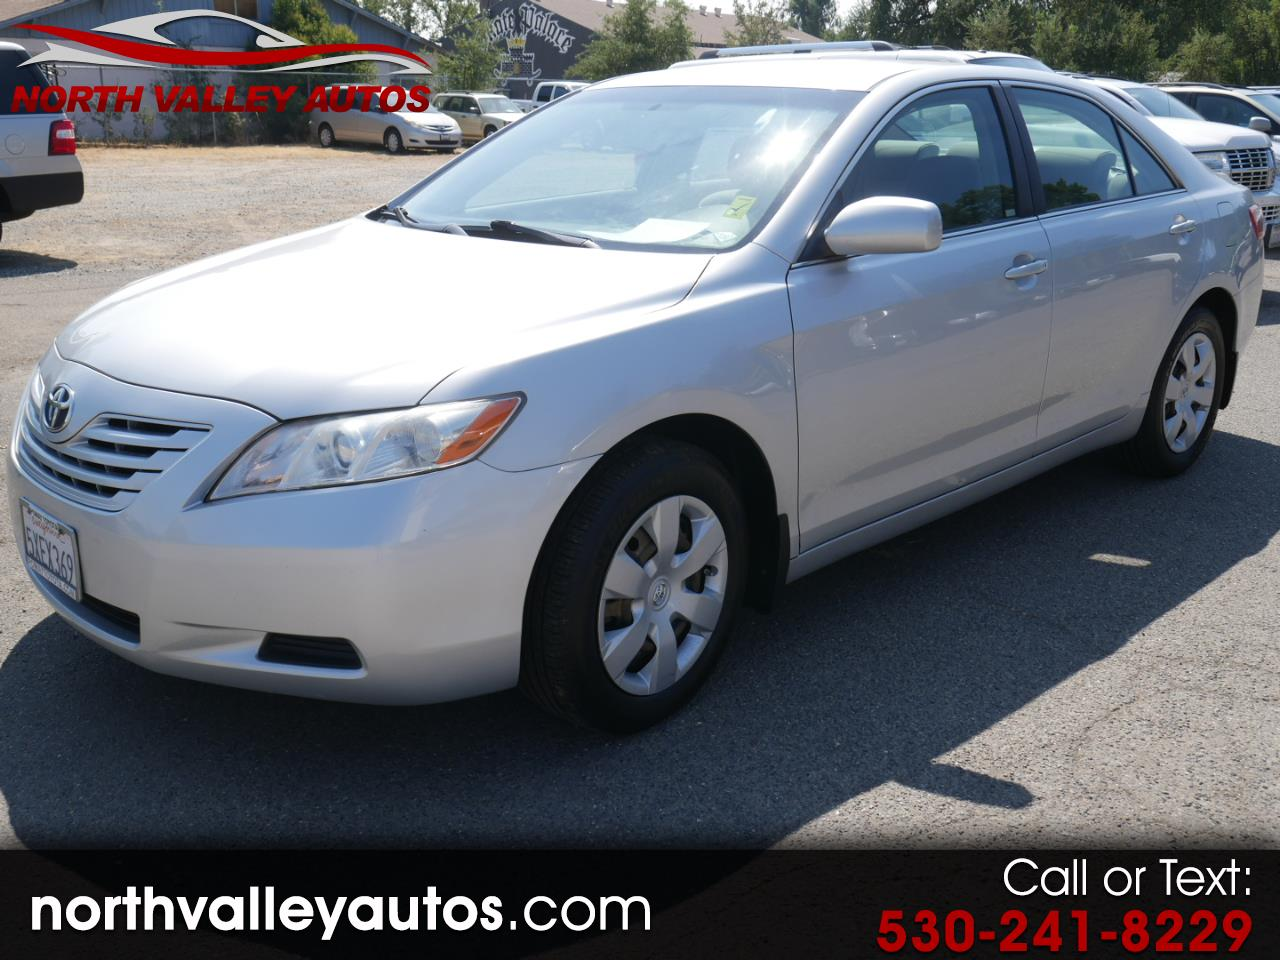 Toyota Camry 4dr Sdn I4 Auto LE (Natl) 2007